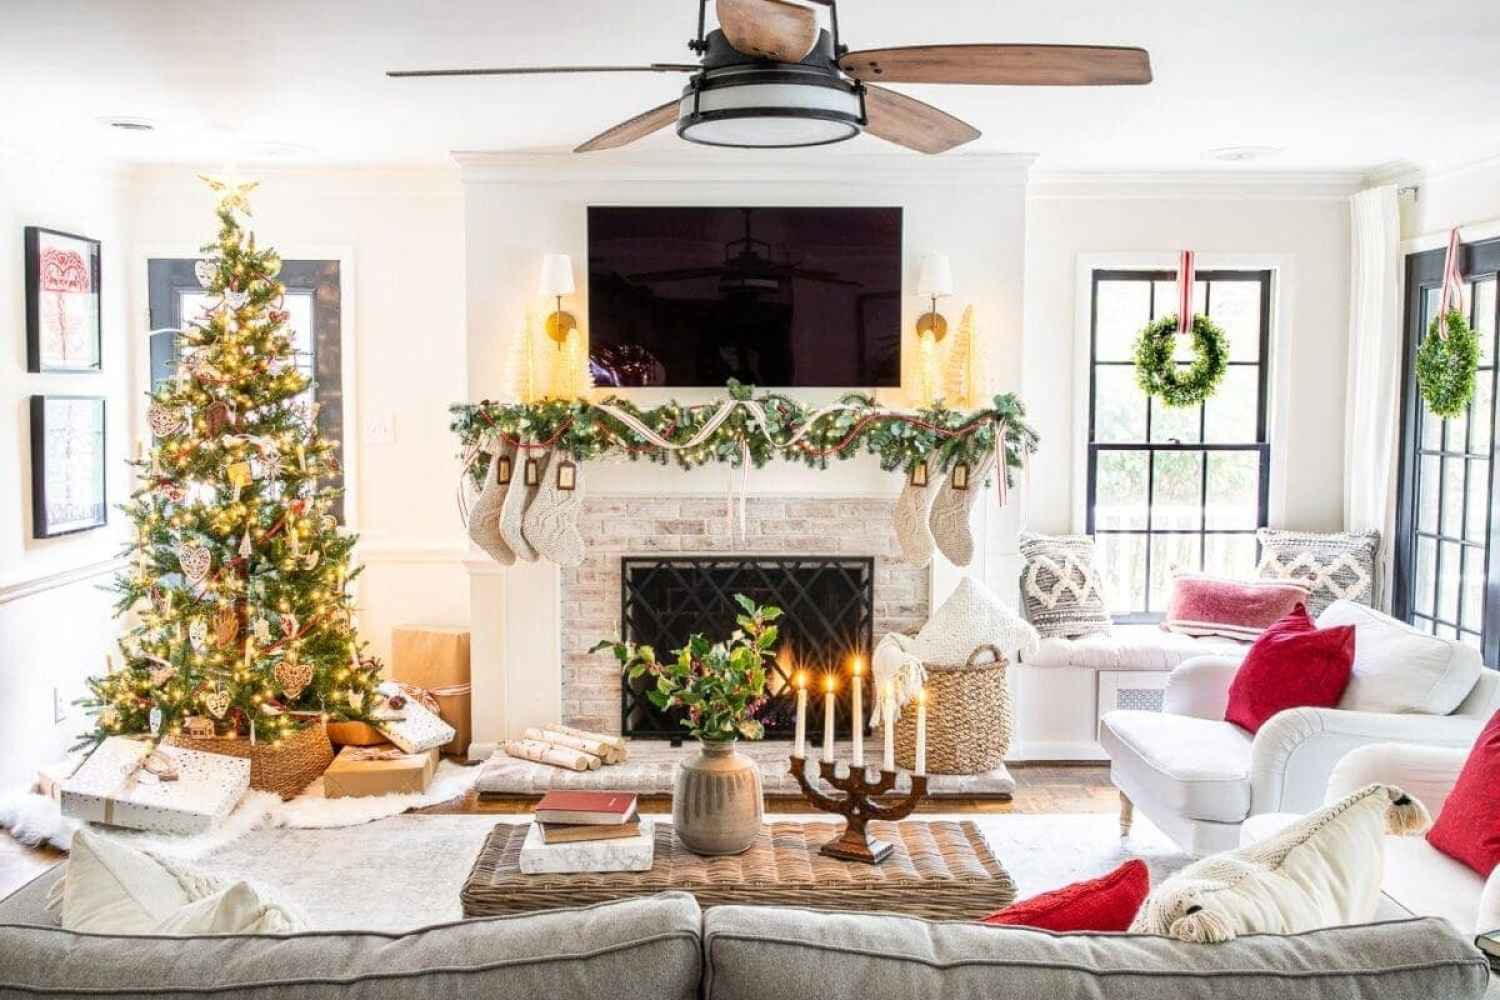 10 tips for mixing family heirlooms and antiques in with your new holiday decor & how to create Swedish Christmas decor style.